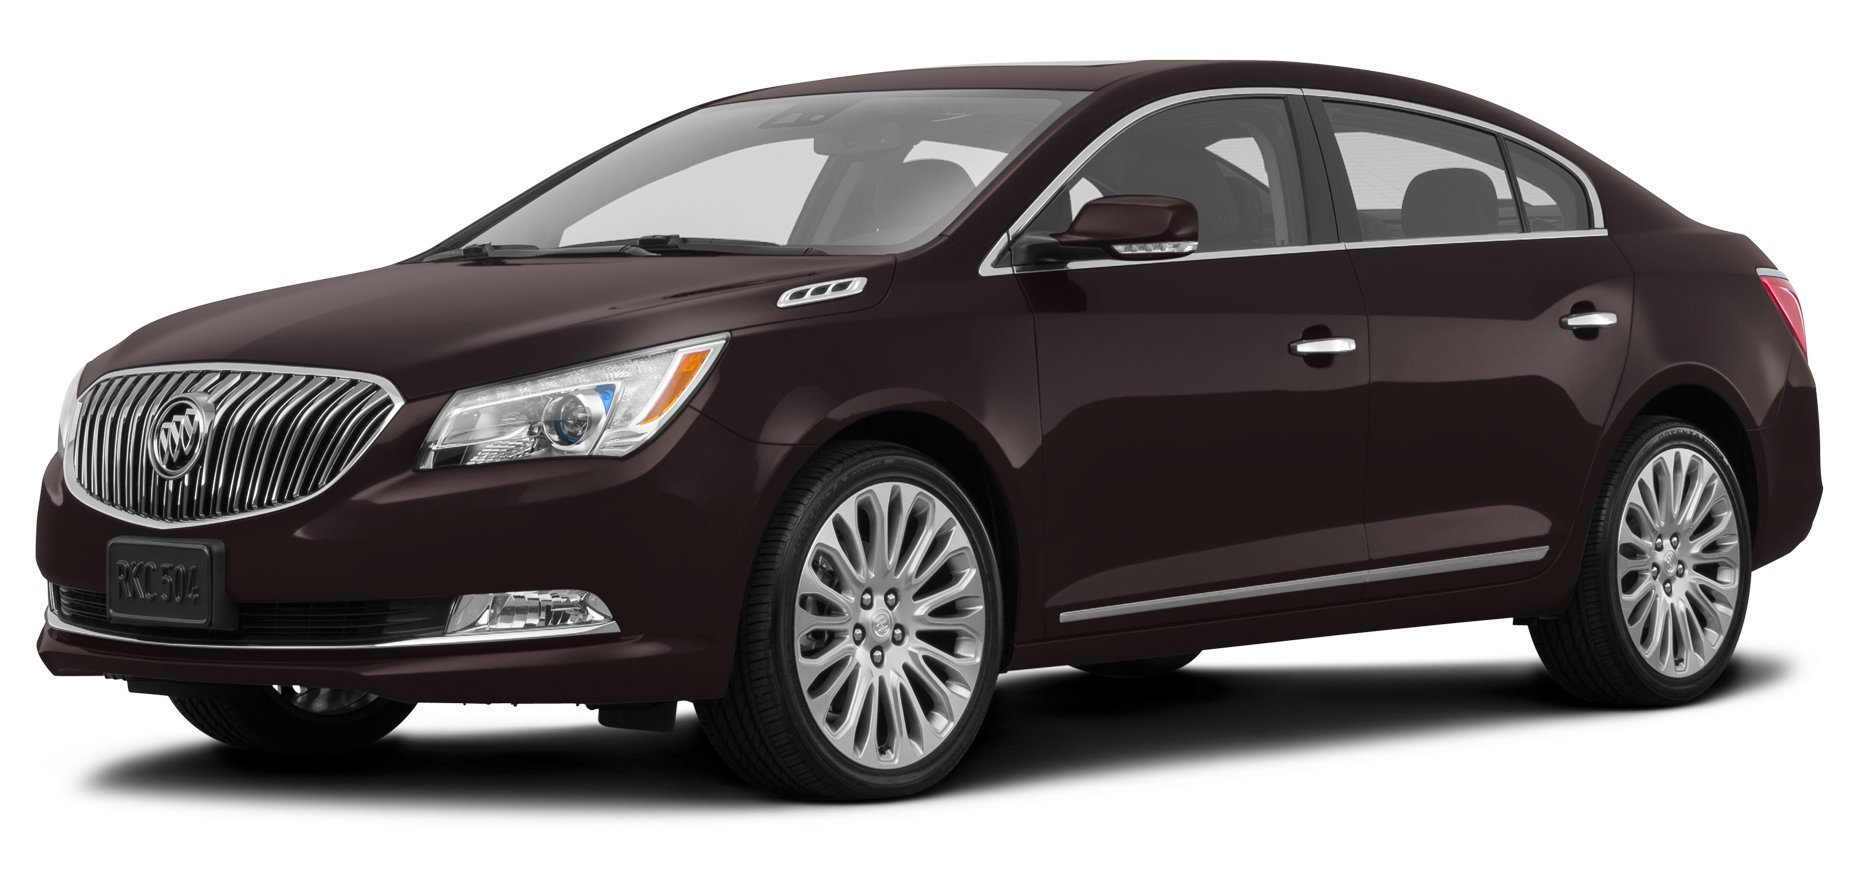 2016 nissan maxima reviews images and specs vehicles. Black Bedroom Furniture Sets. Home Design Ideas